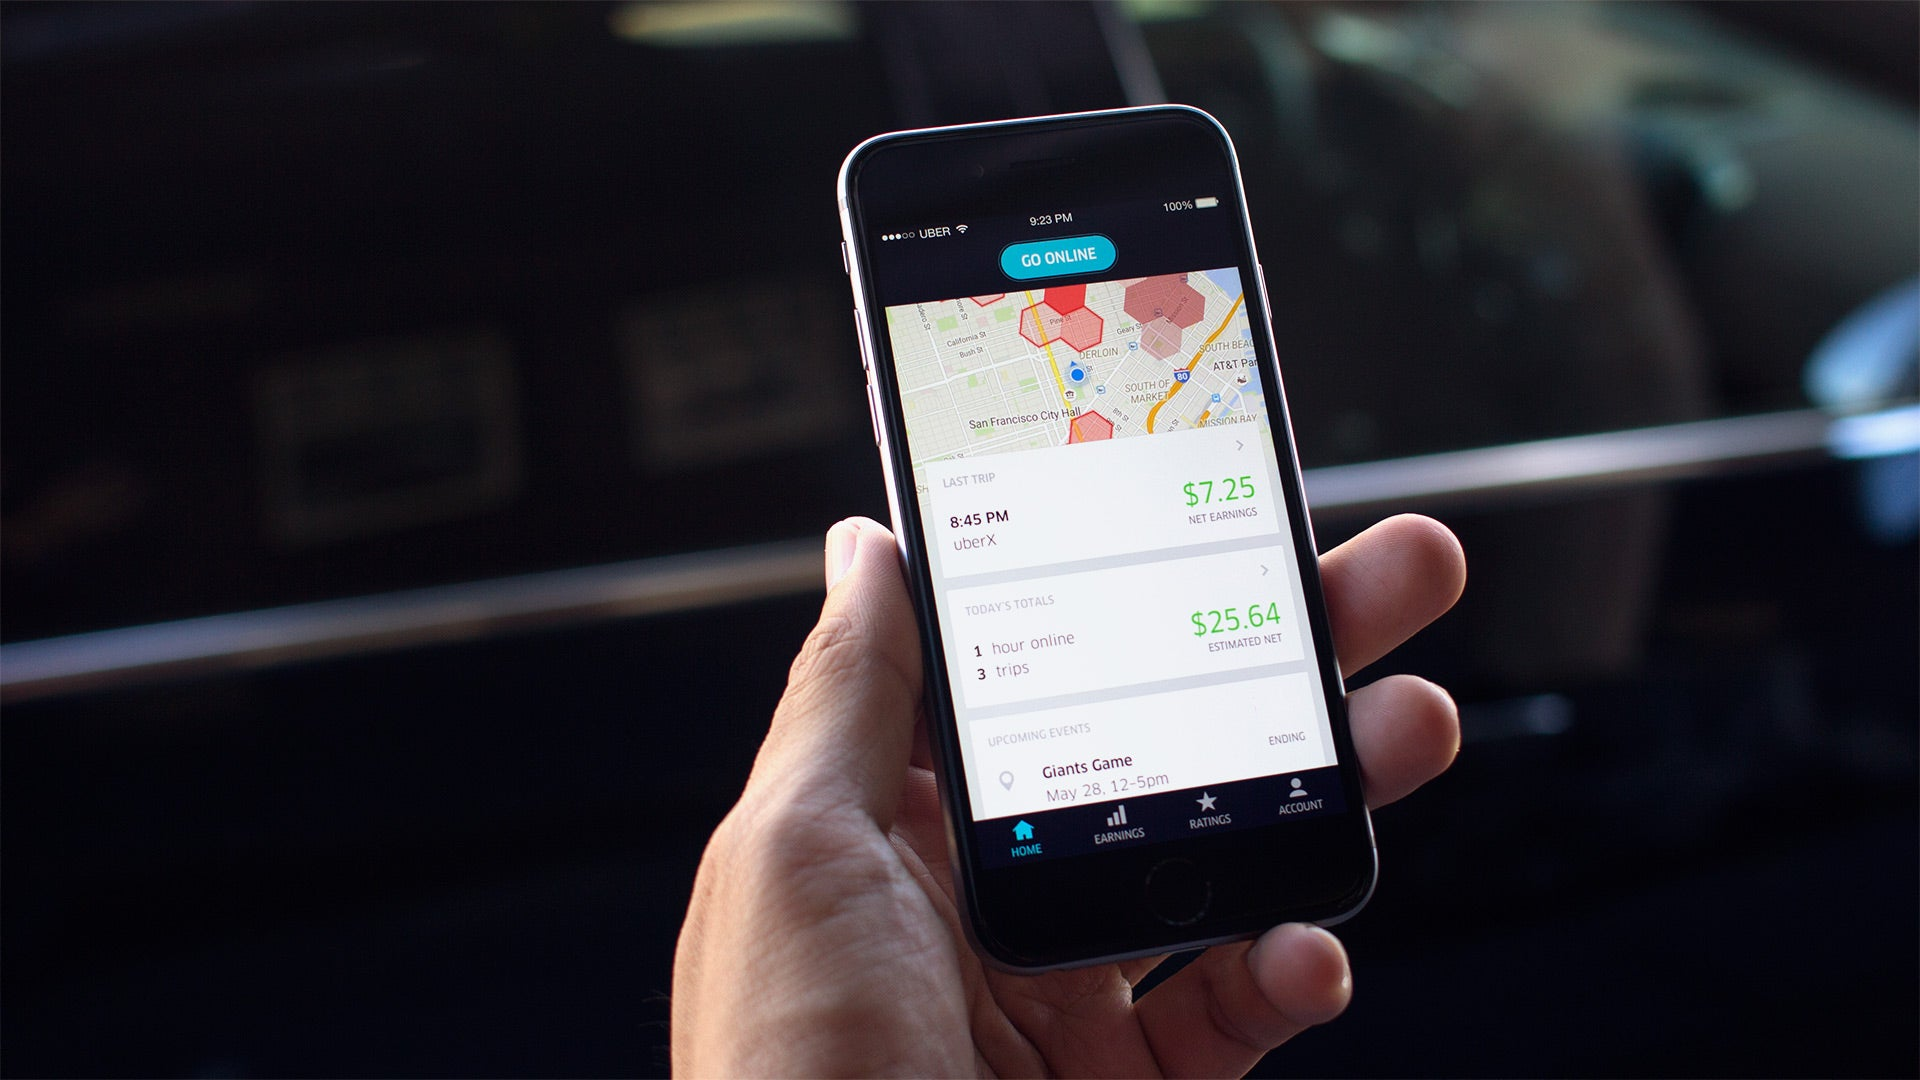 A person holding a smartphone with the Uber app open.